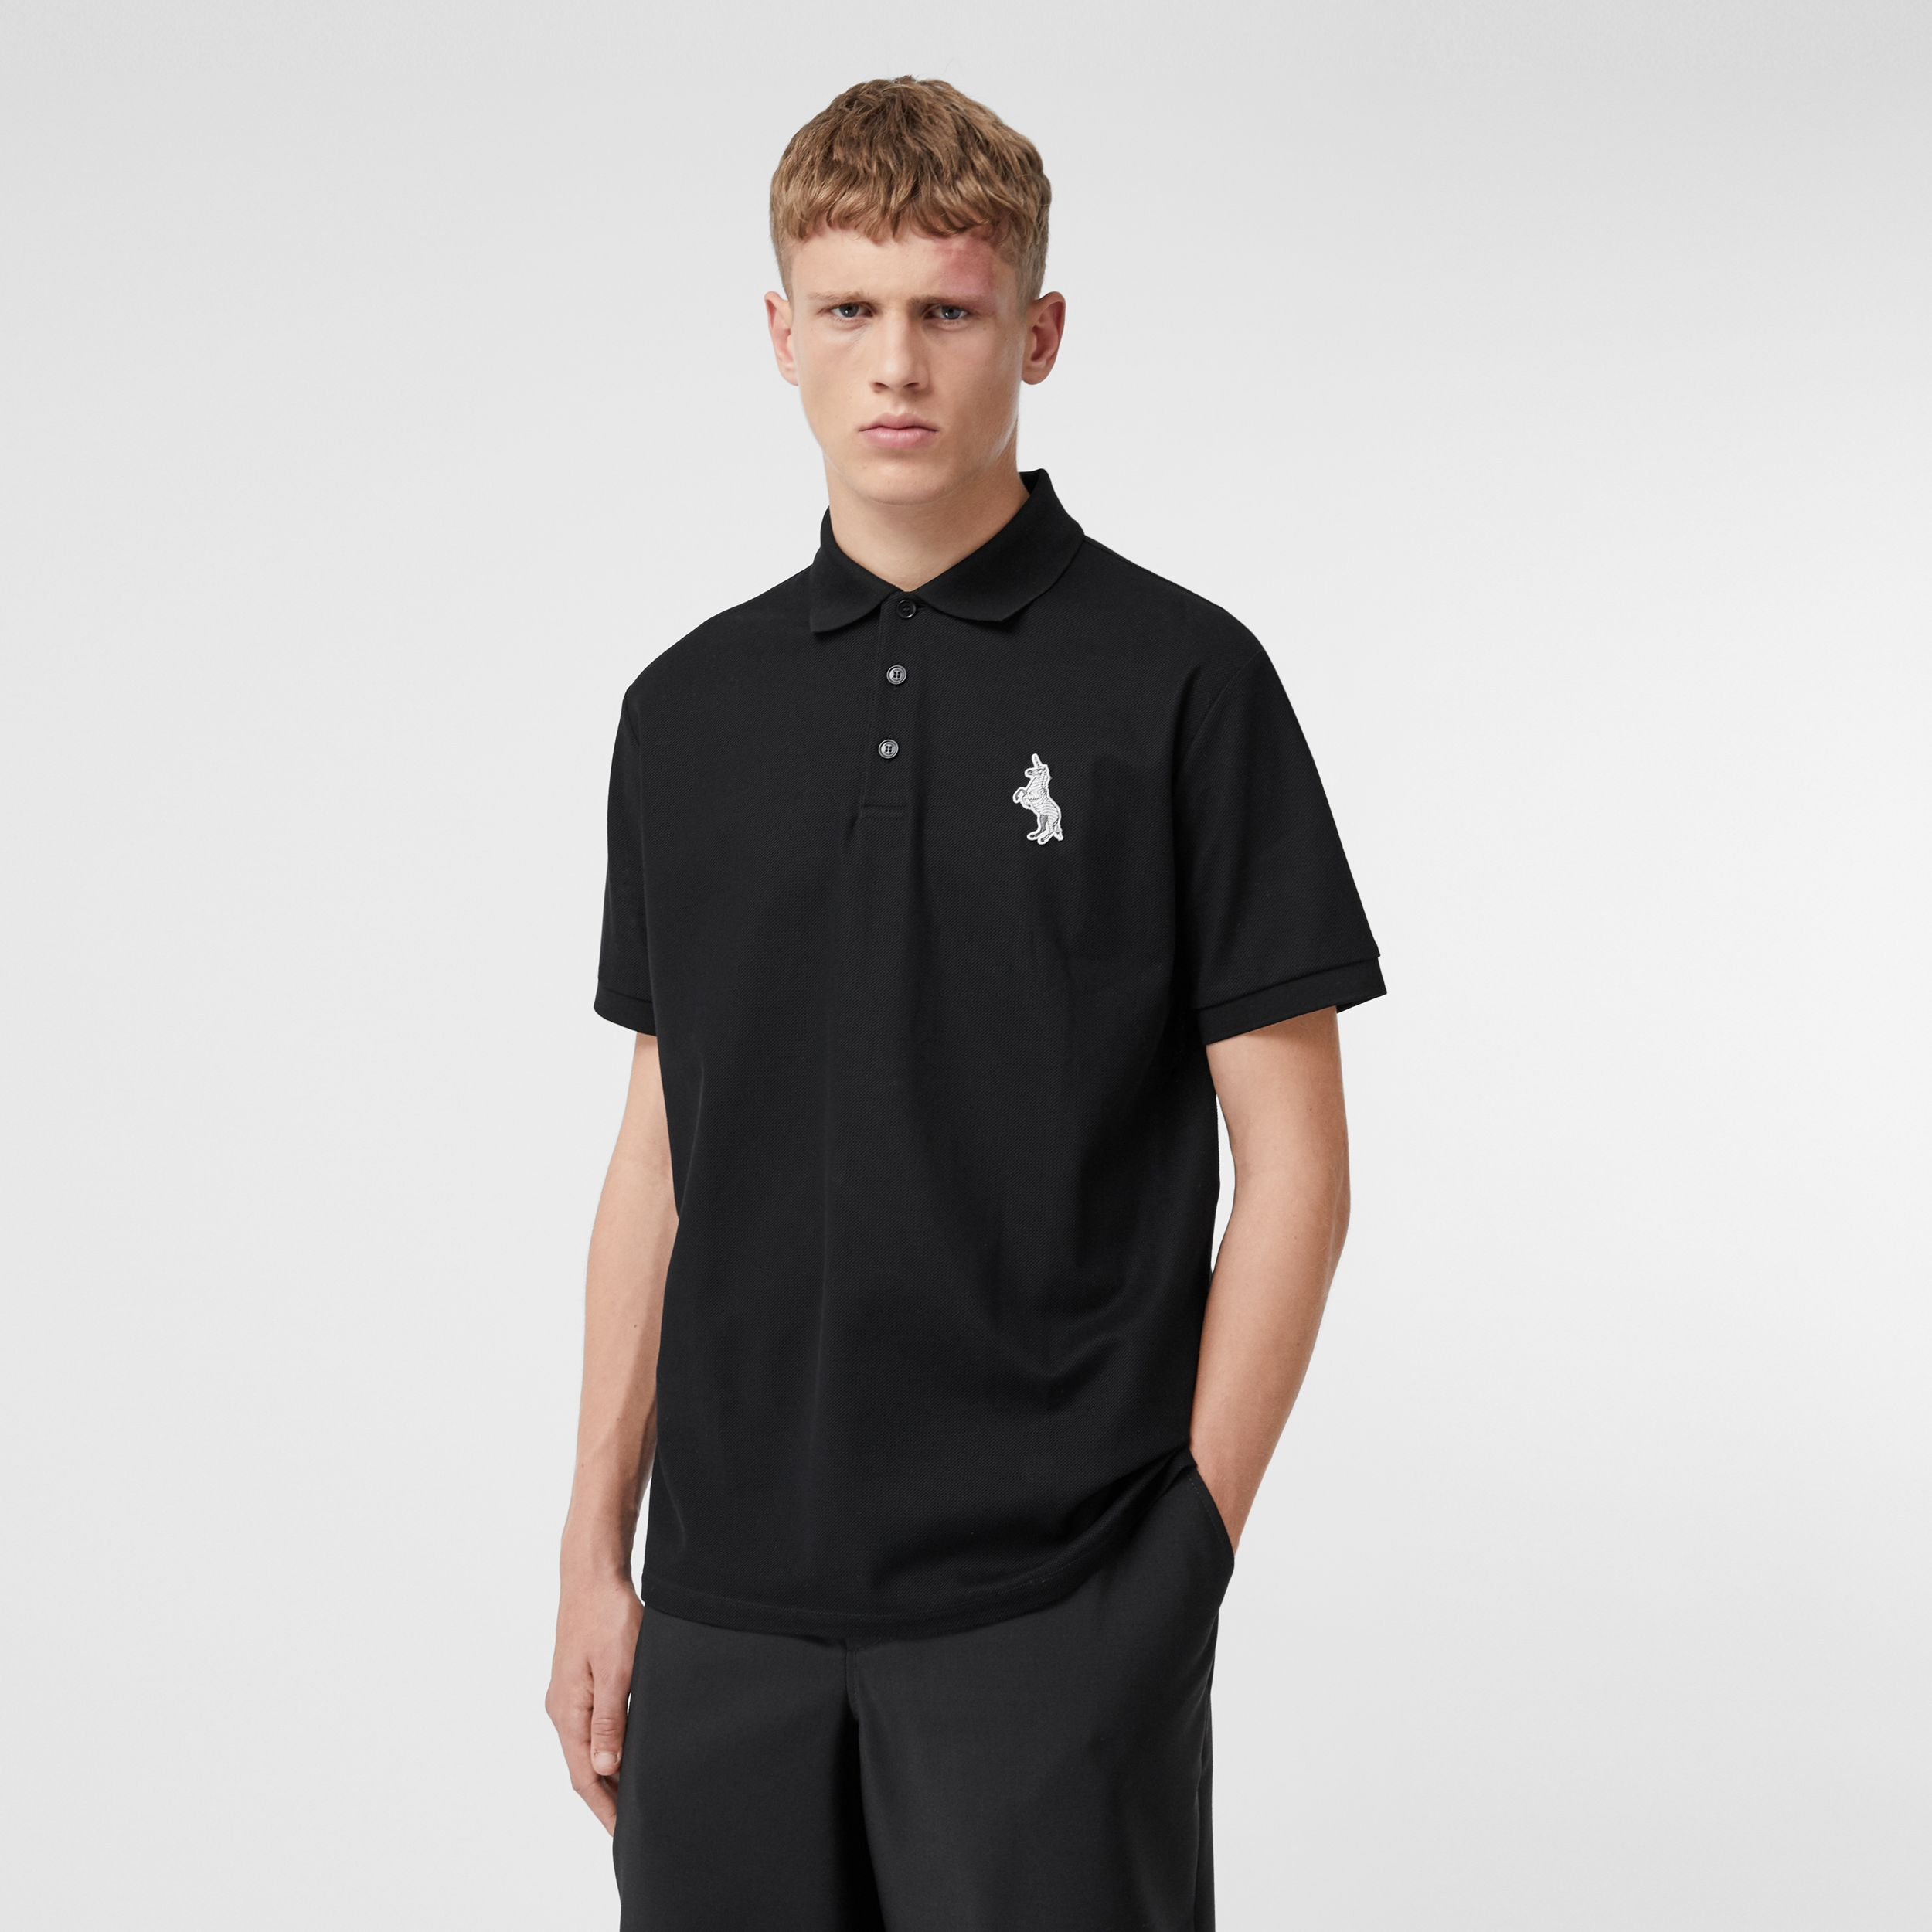 Zebra Appliqué Cotton Piqué Polo Shirt in Black - Men | Burberry Australia - 1